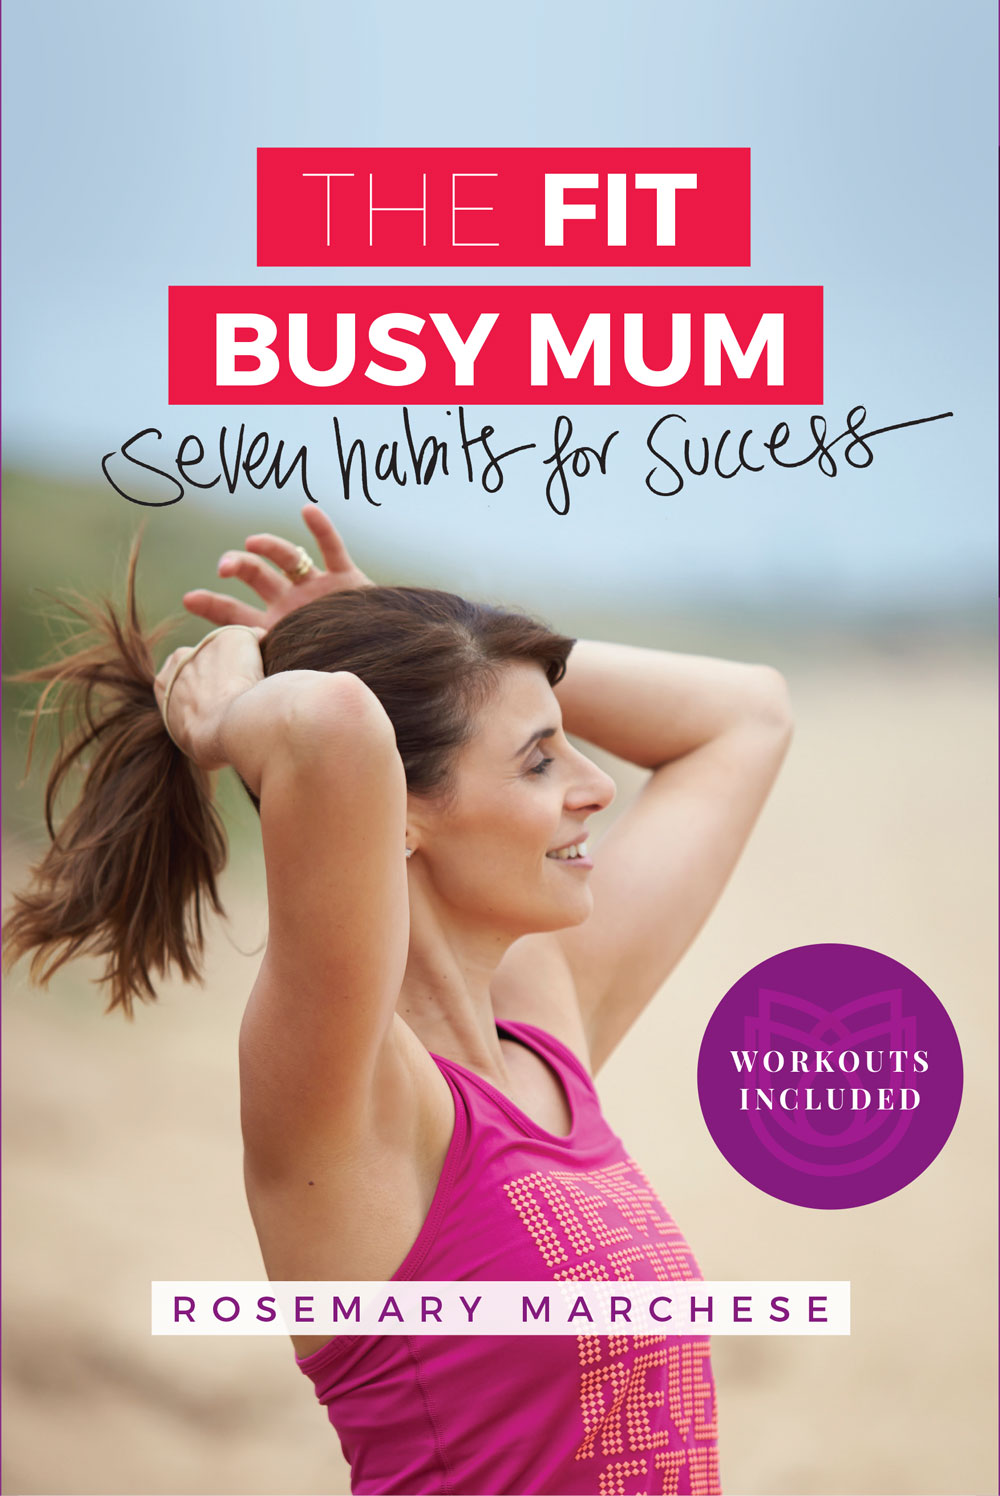 The Fit Busy Mum: 7 habits for success